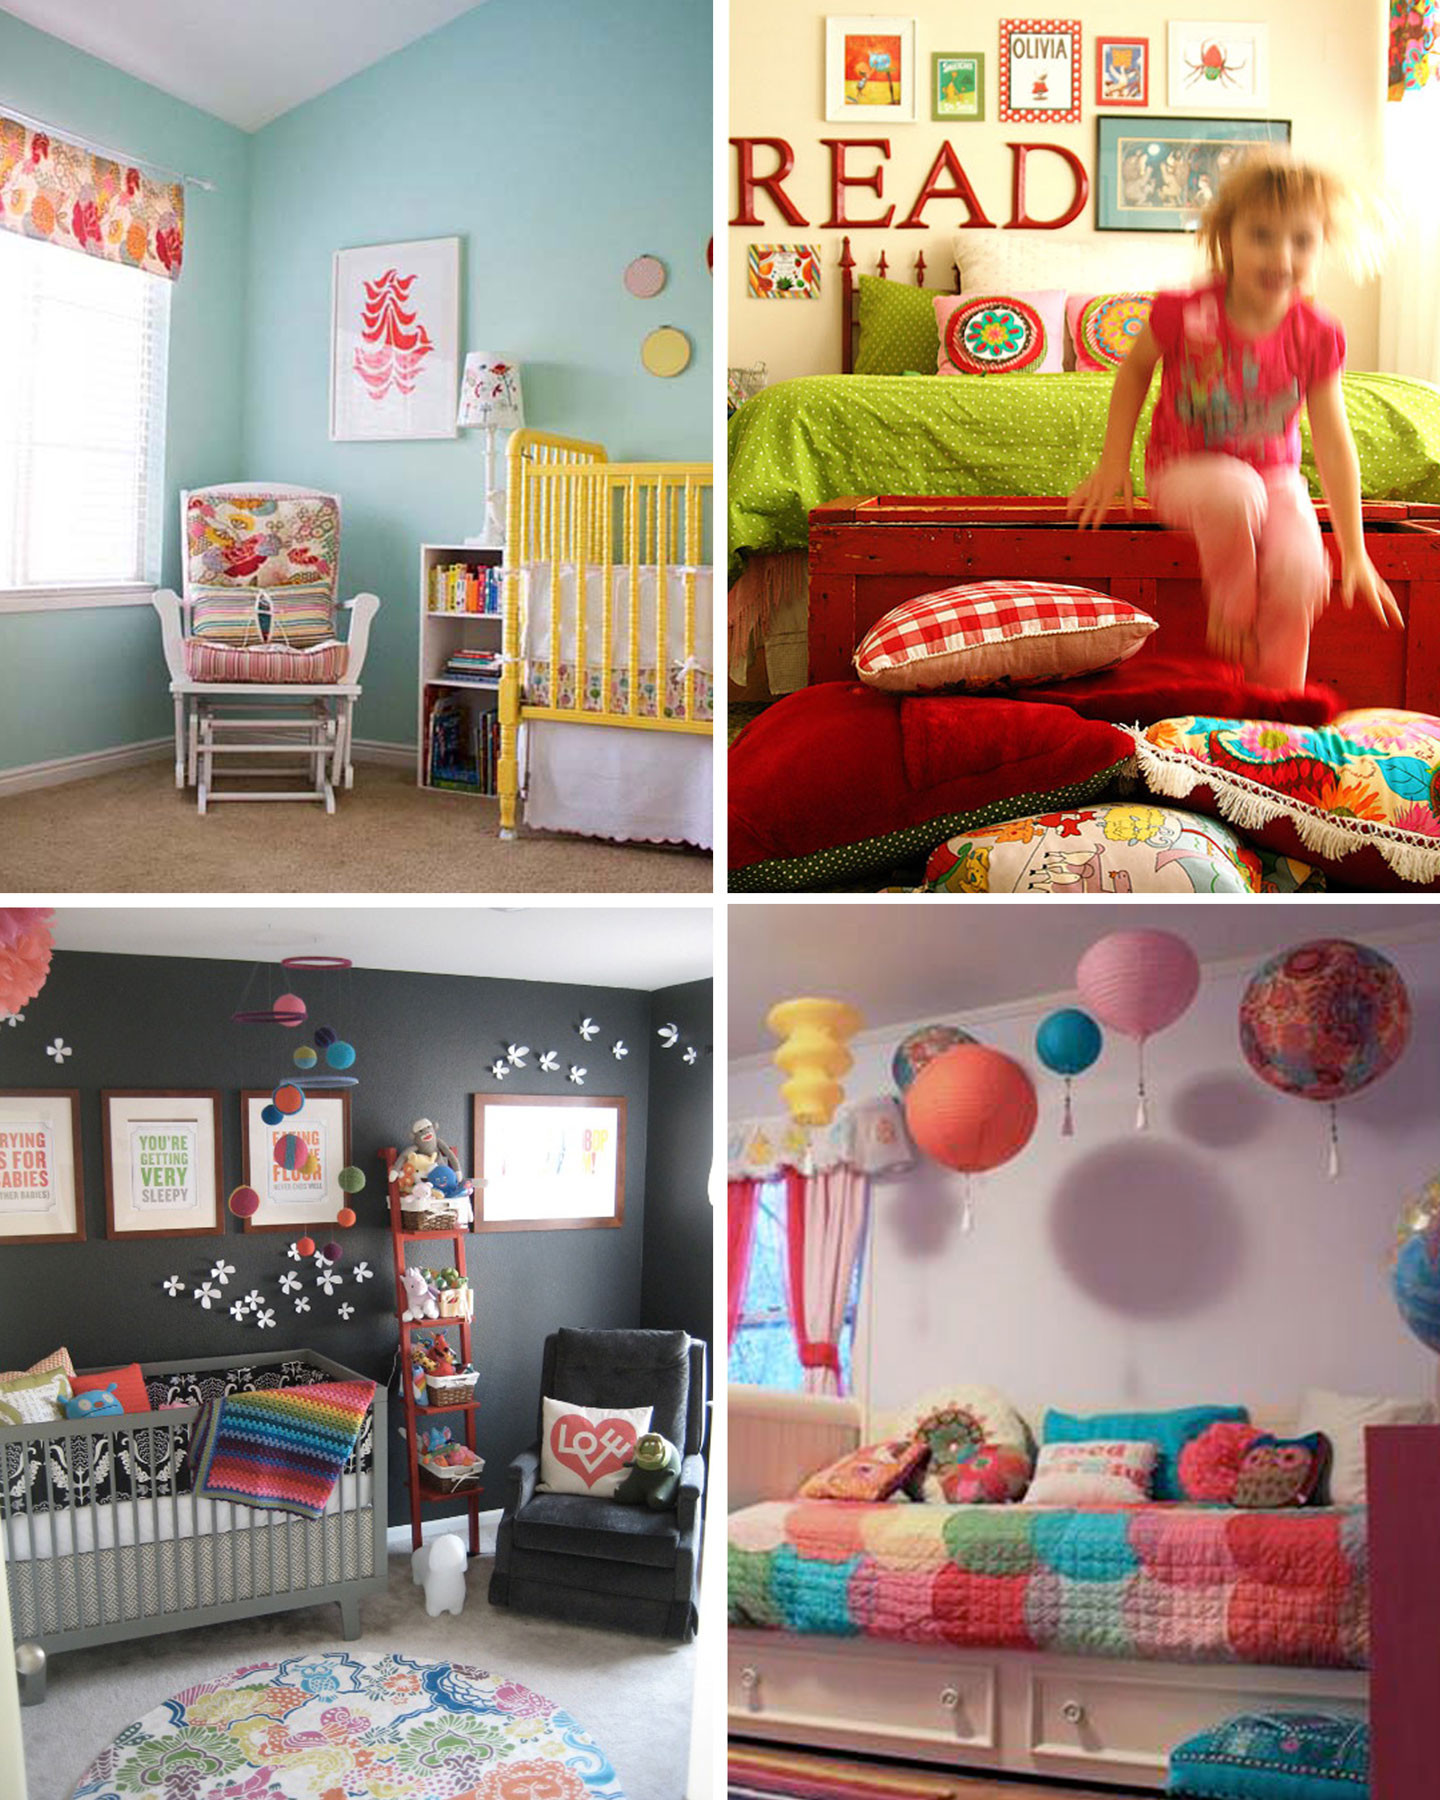 Best ideas about Diy Kids Room . Save or Pin DIY Friday Kids Room Inspiration Now.